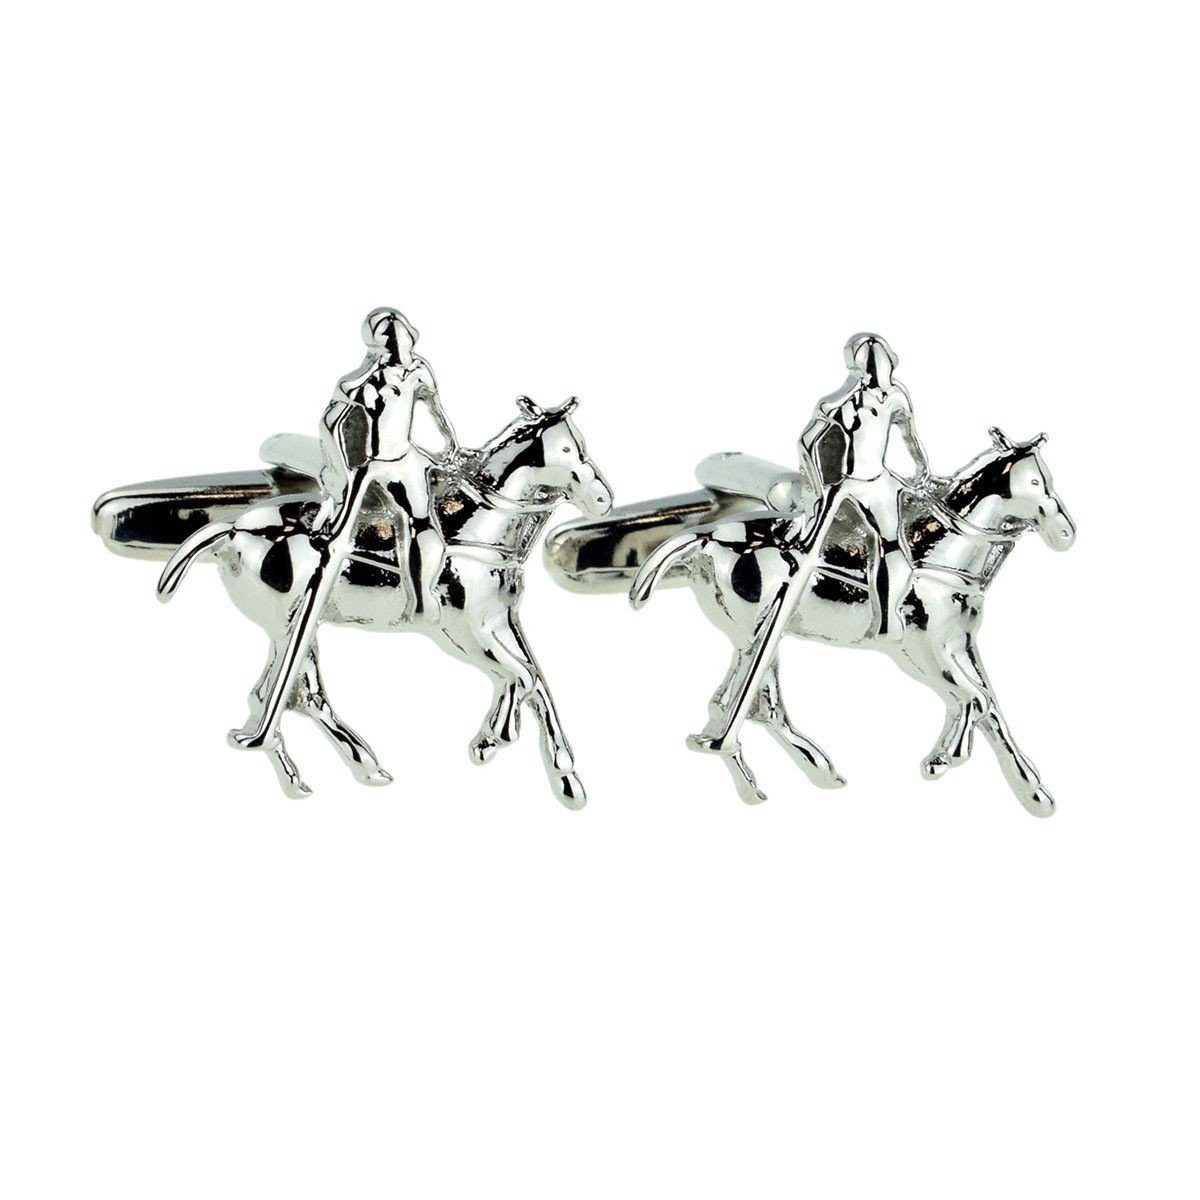 Horse Mounted Polo Player Cufflinks, Novelty Cufflinks, Cuffed.com.au, ZBC1973, $36.30